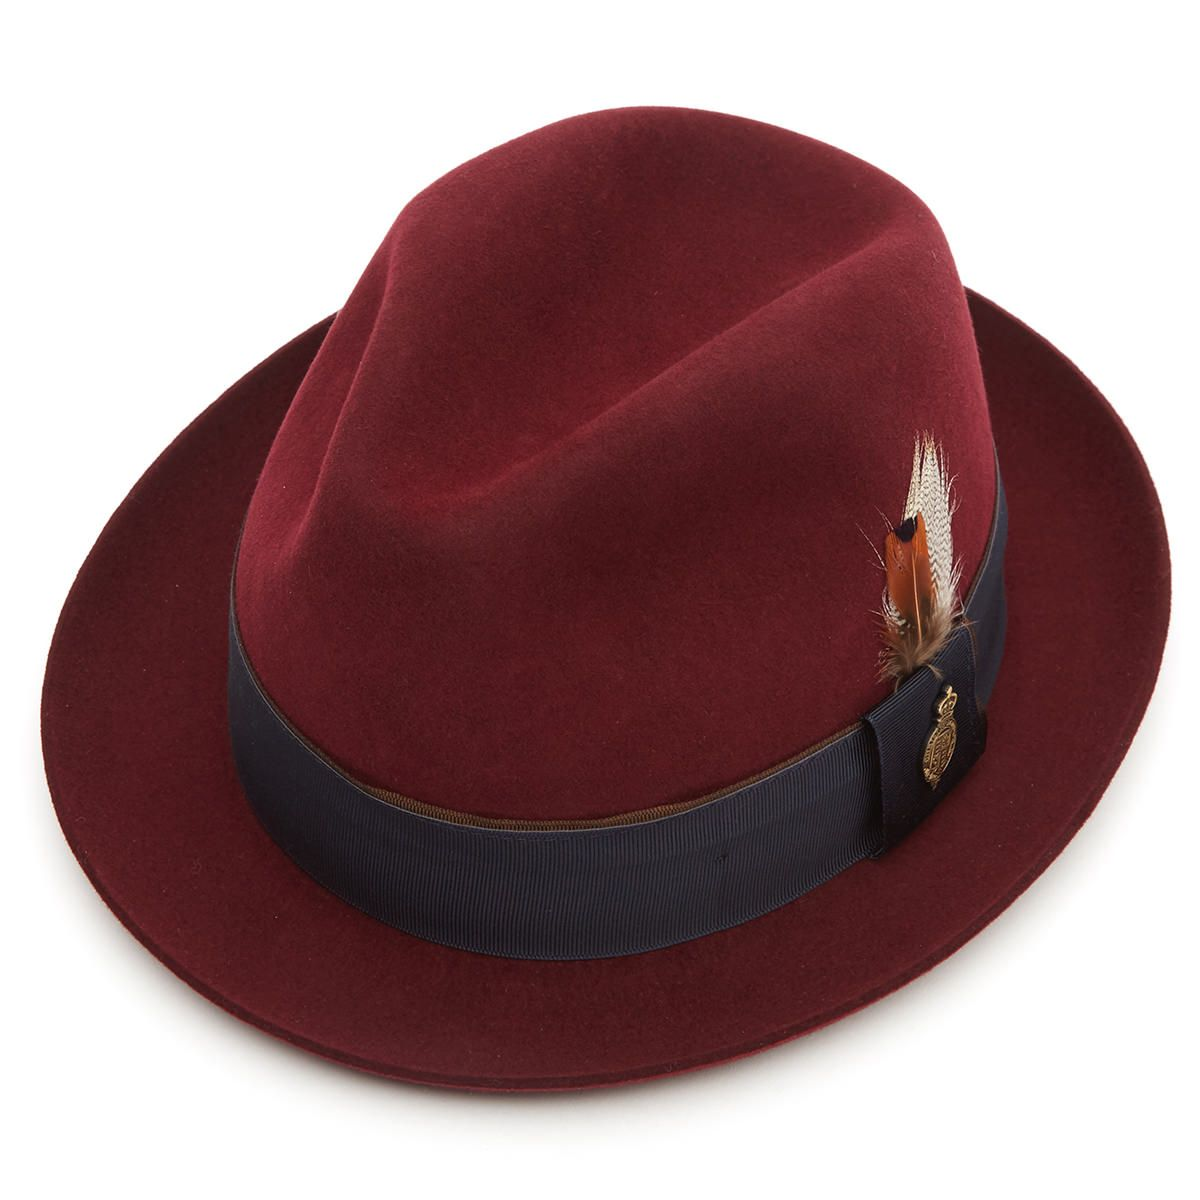 Finchley Fur Felt Trilby Hat Red Wine 55